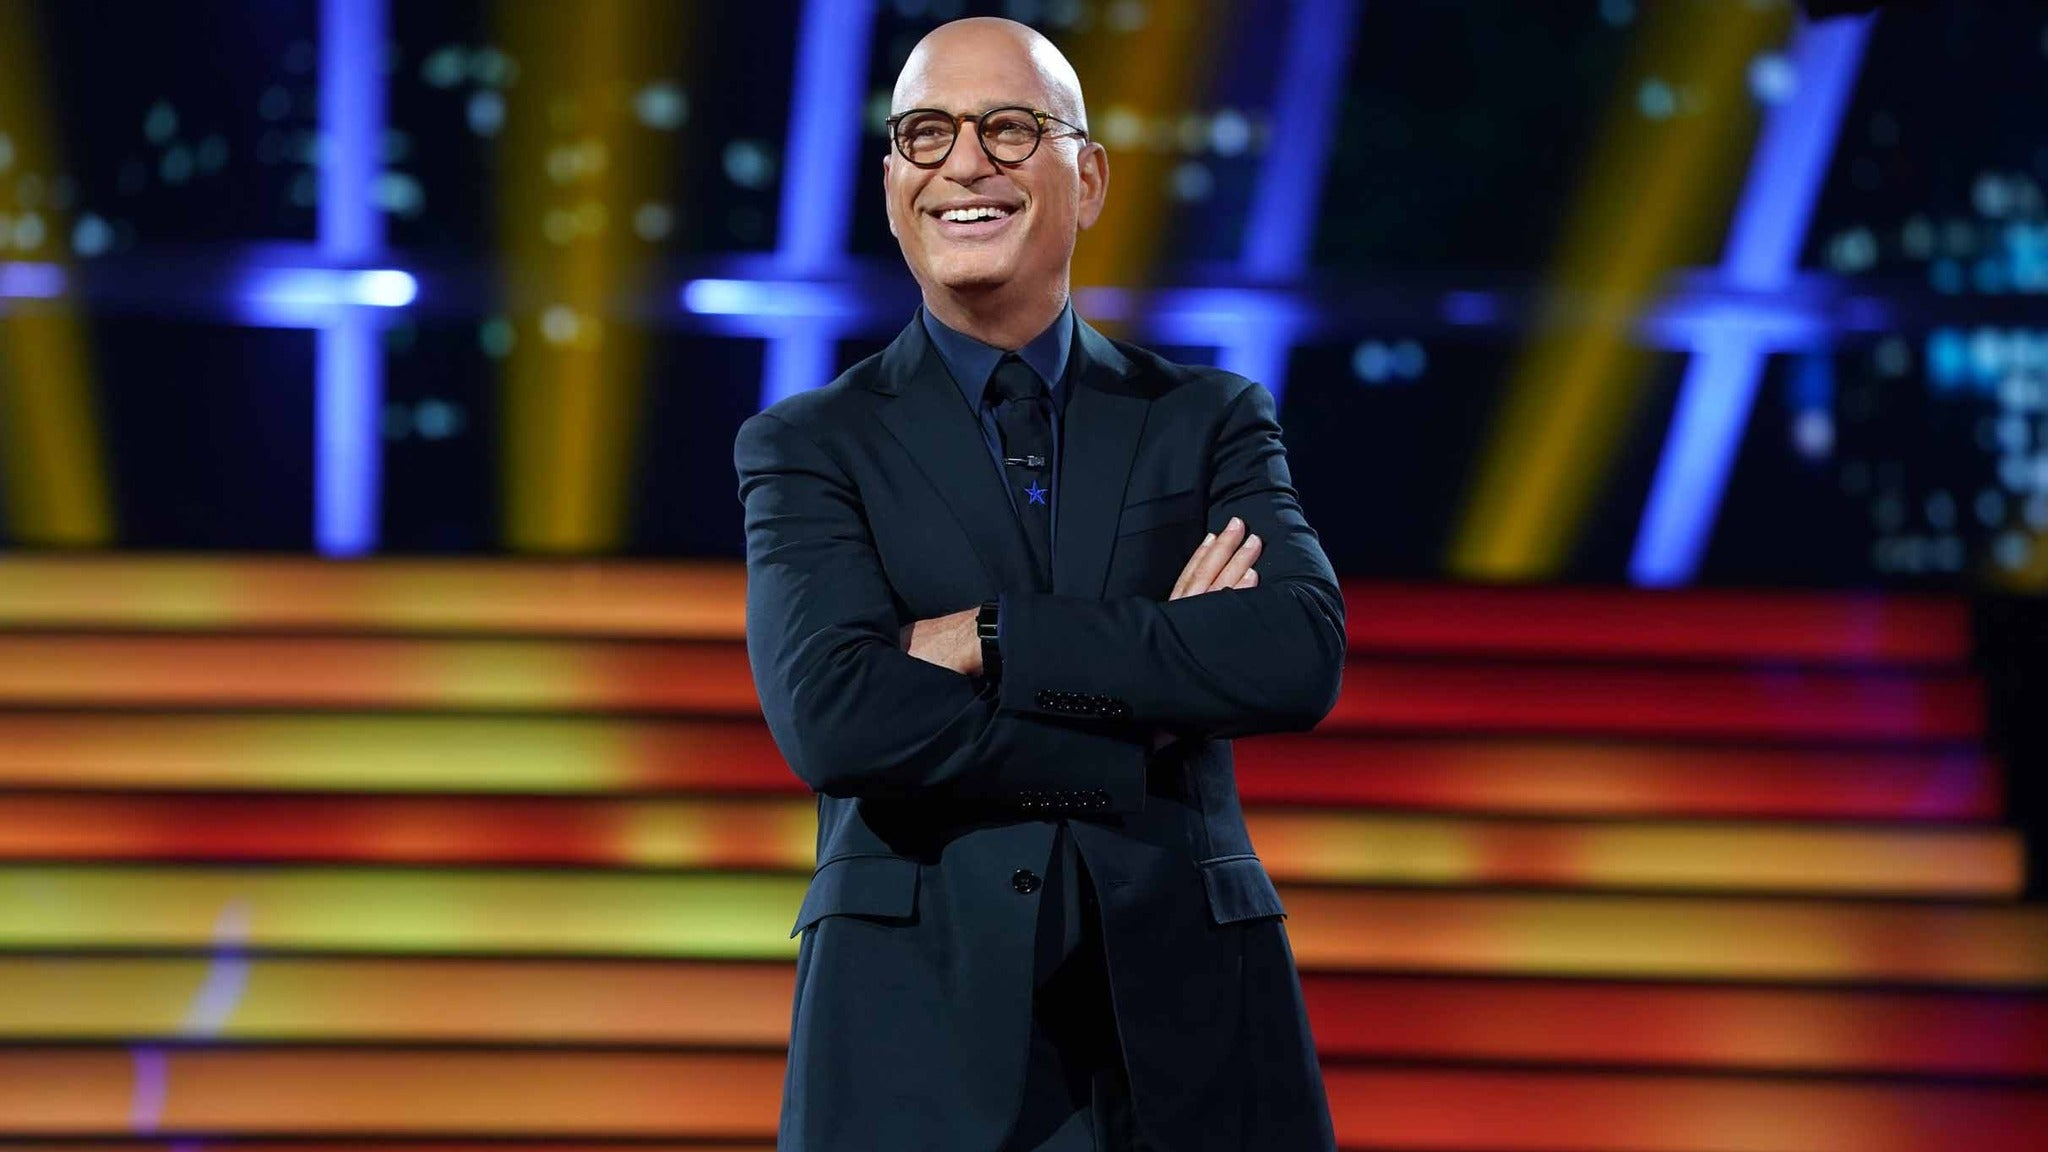 Howie Mandel at Ridgefield Playhouse